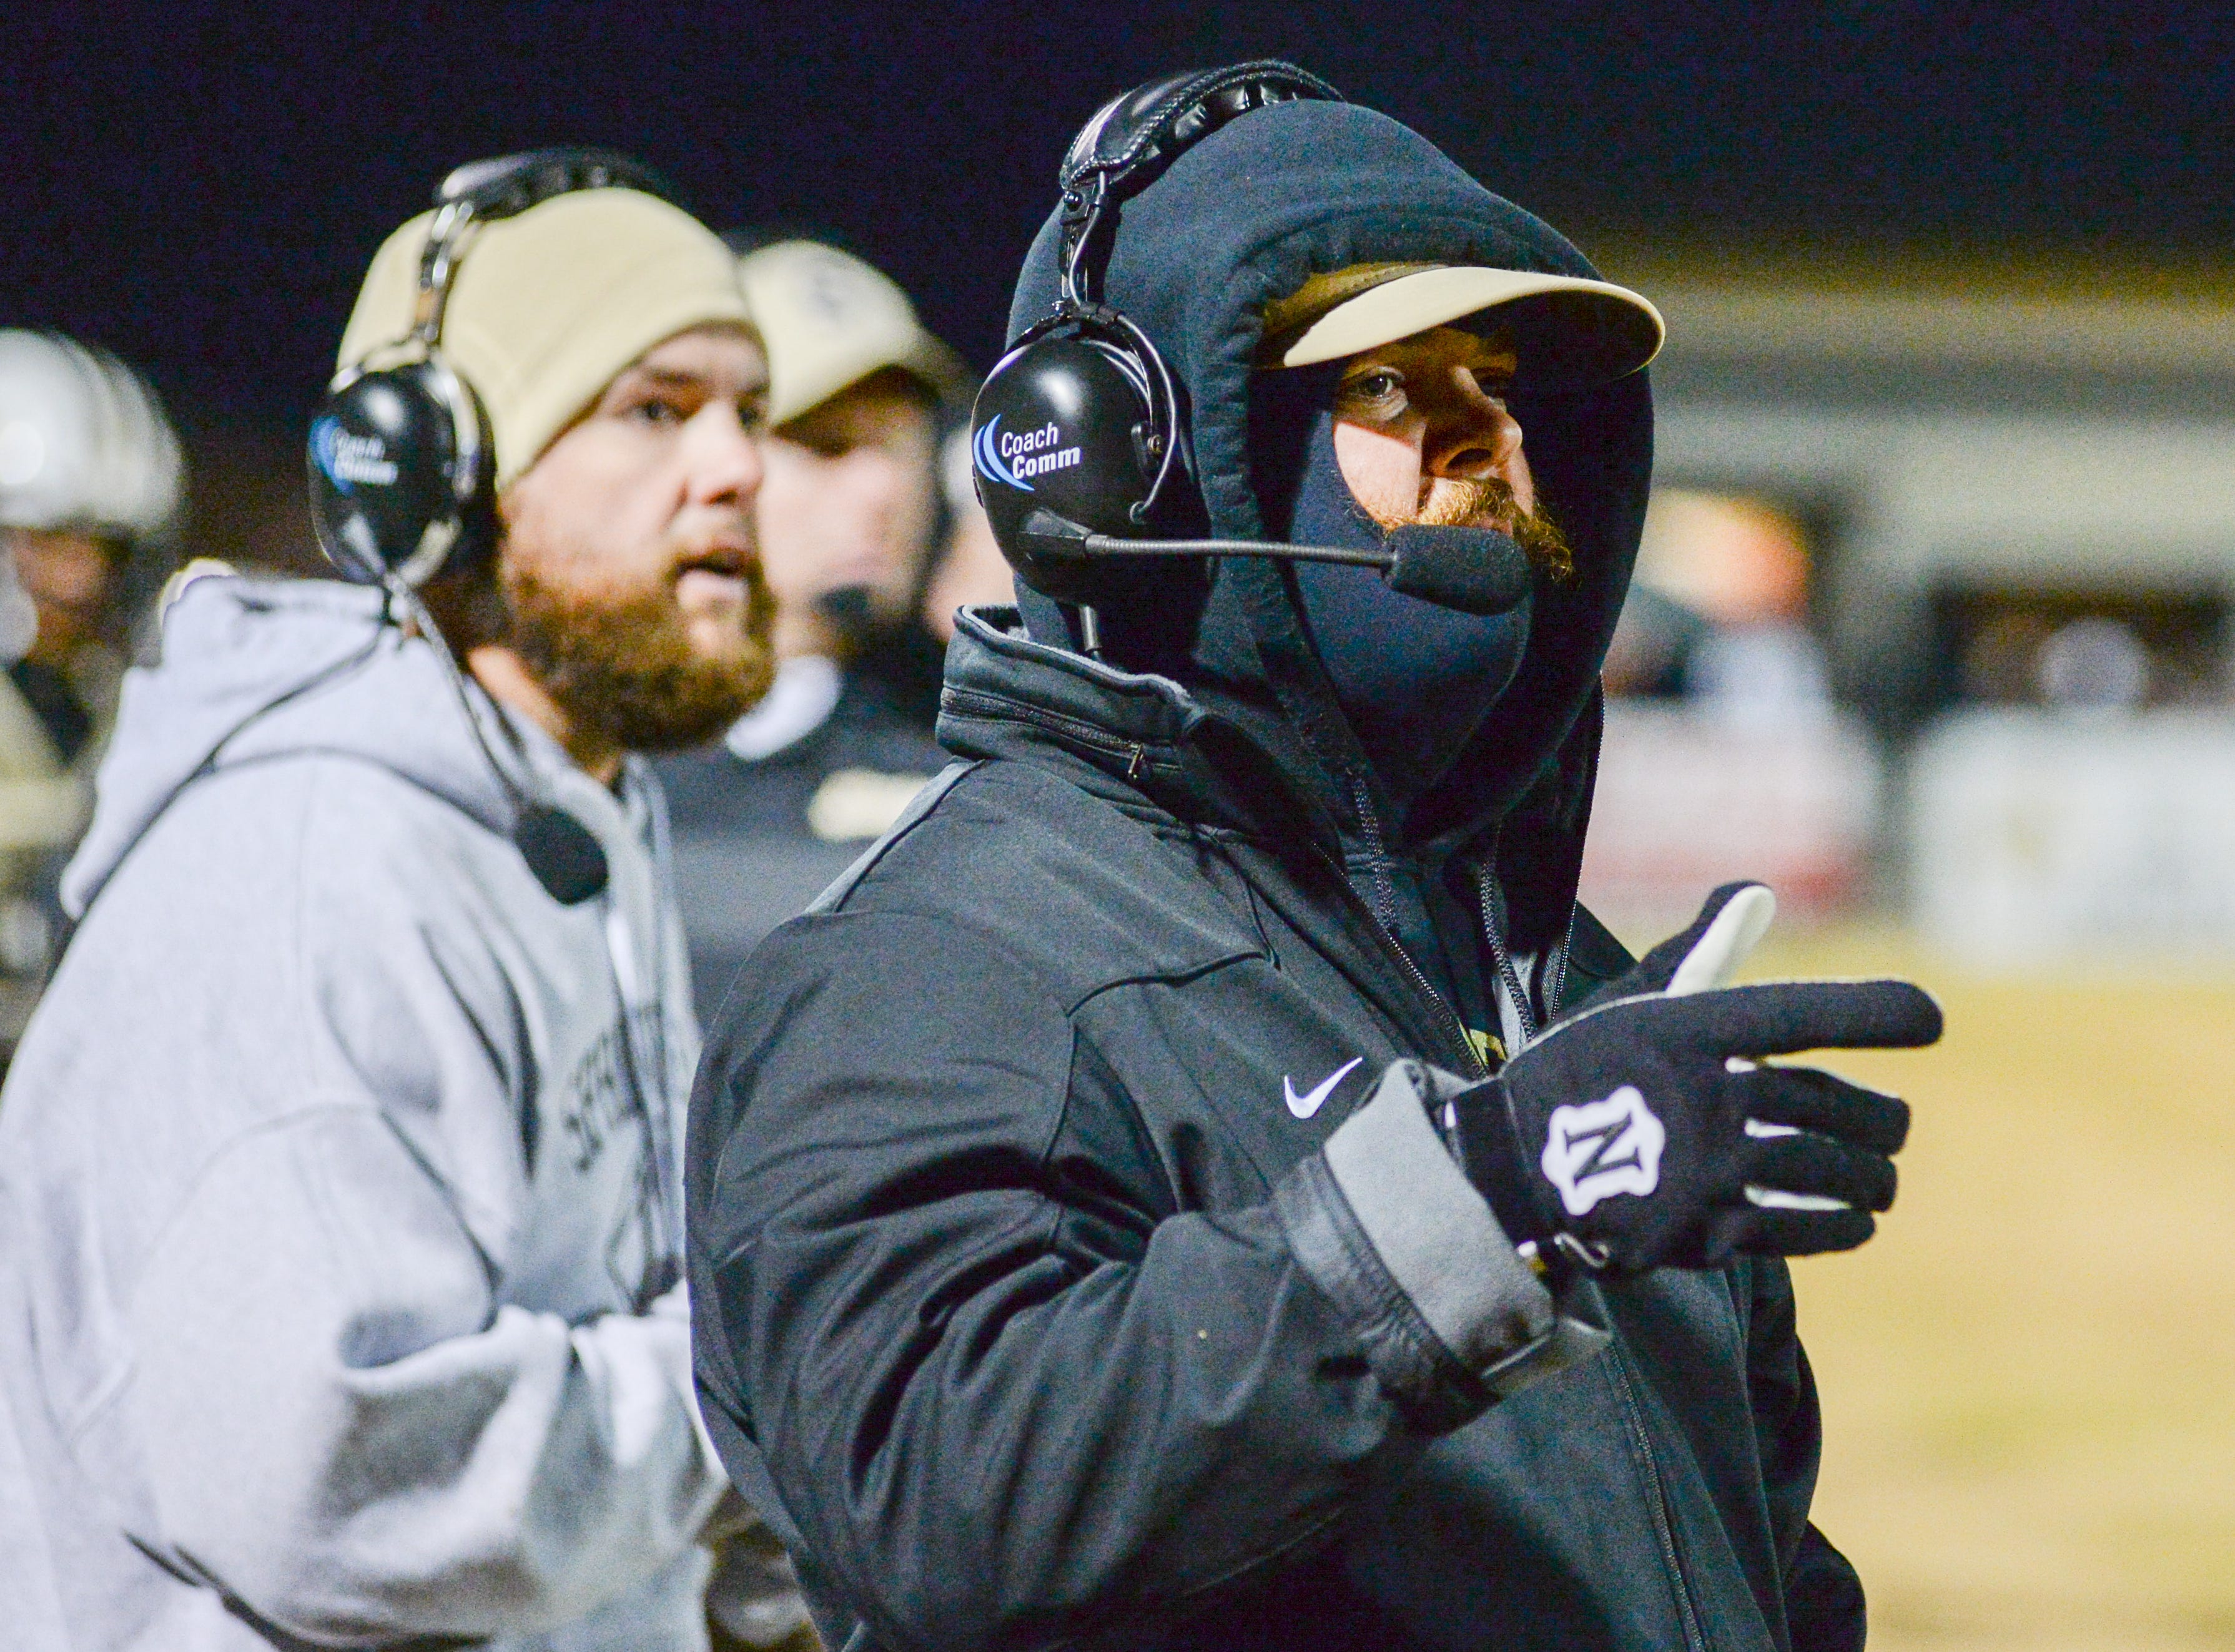 Springfield High School coach Dustin Wilson checks out the situation during a game against South Side School at Springfield High School on Friday, Nov. 9.